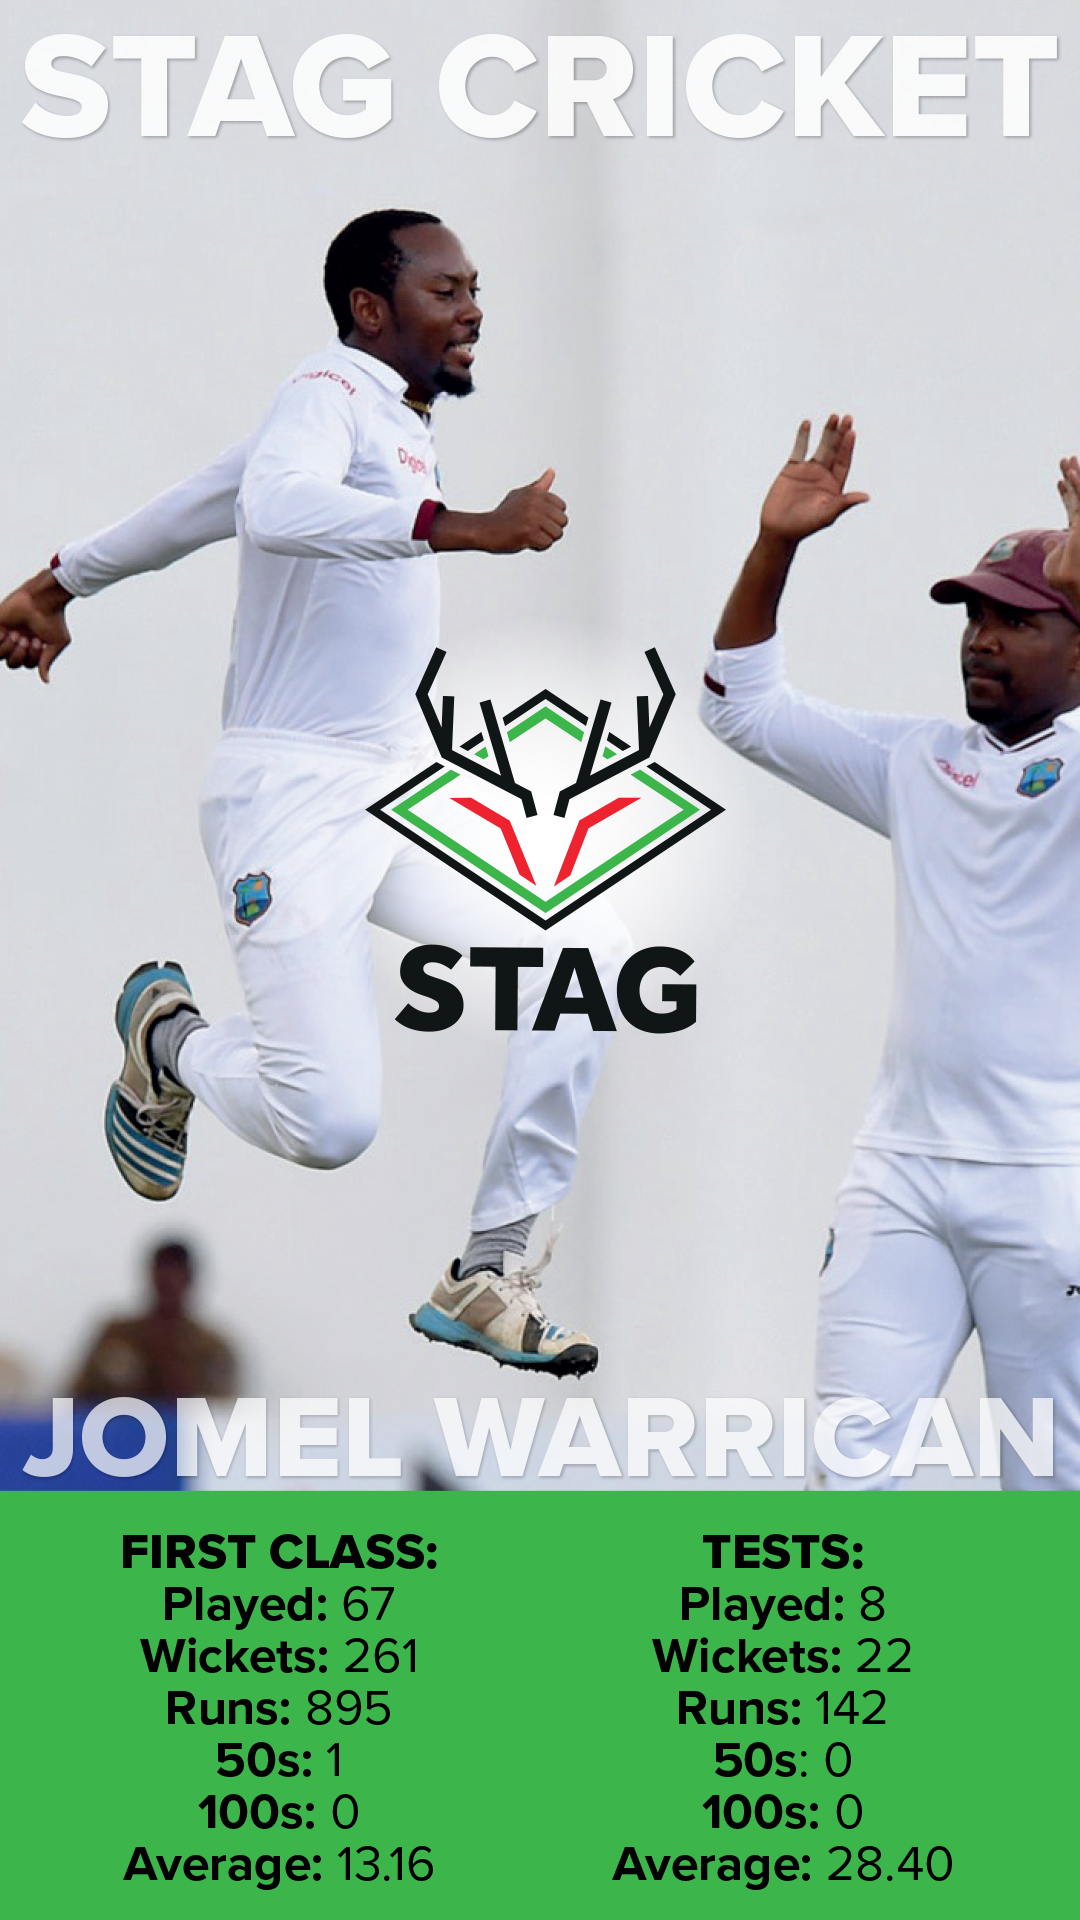 Cricketer and Stag Ambassador Jomel Warrican Player Profile